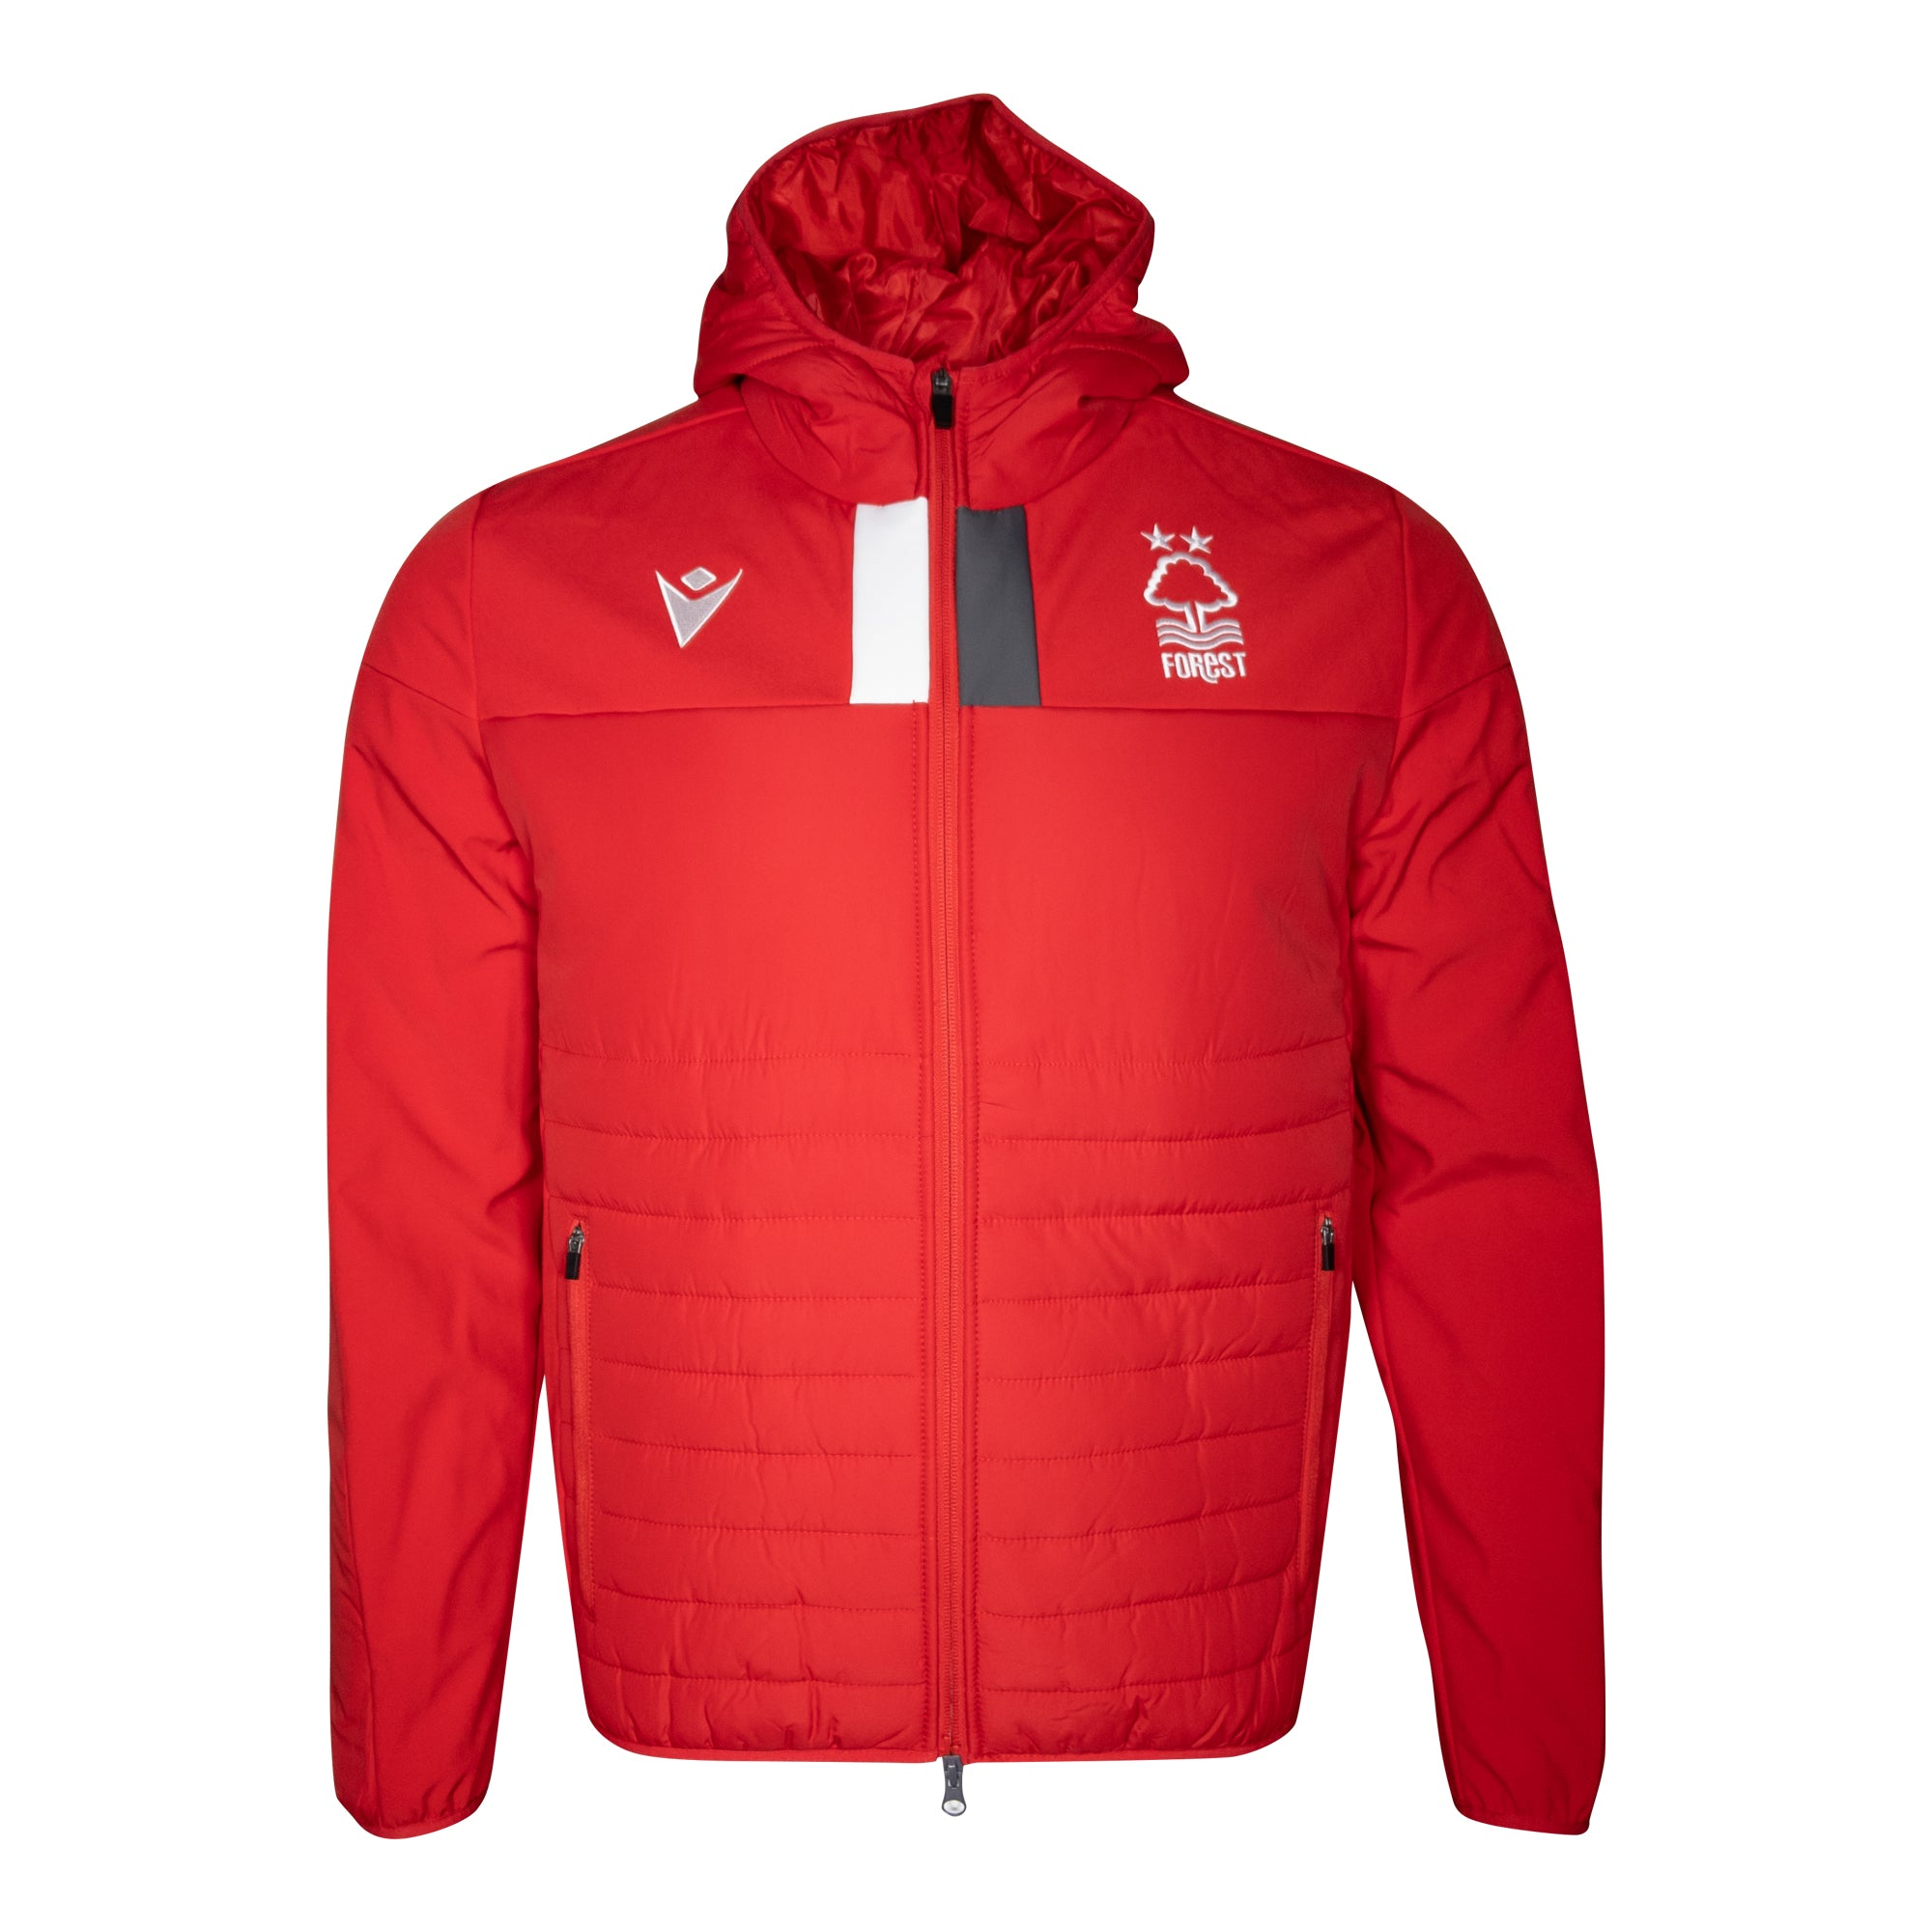 NFFC Mens Red Player Bomber Jacket 19/20